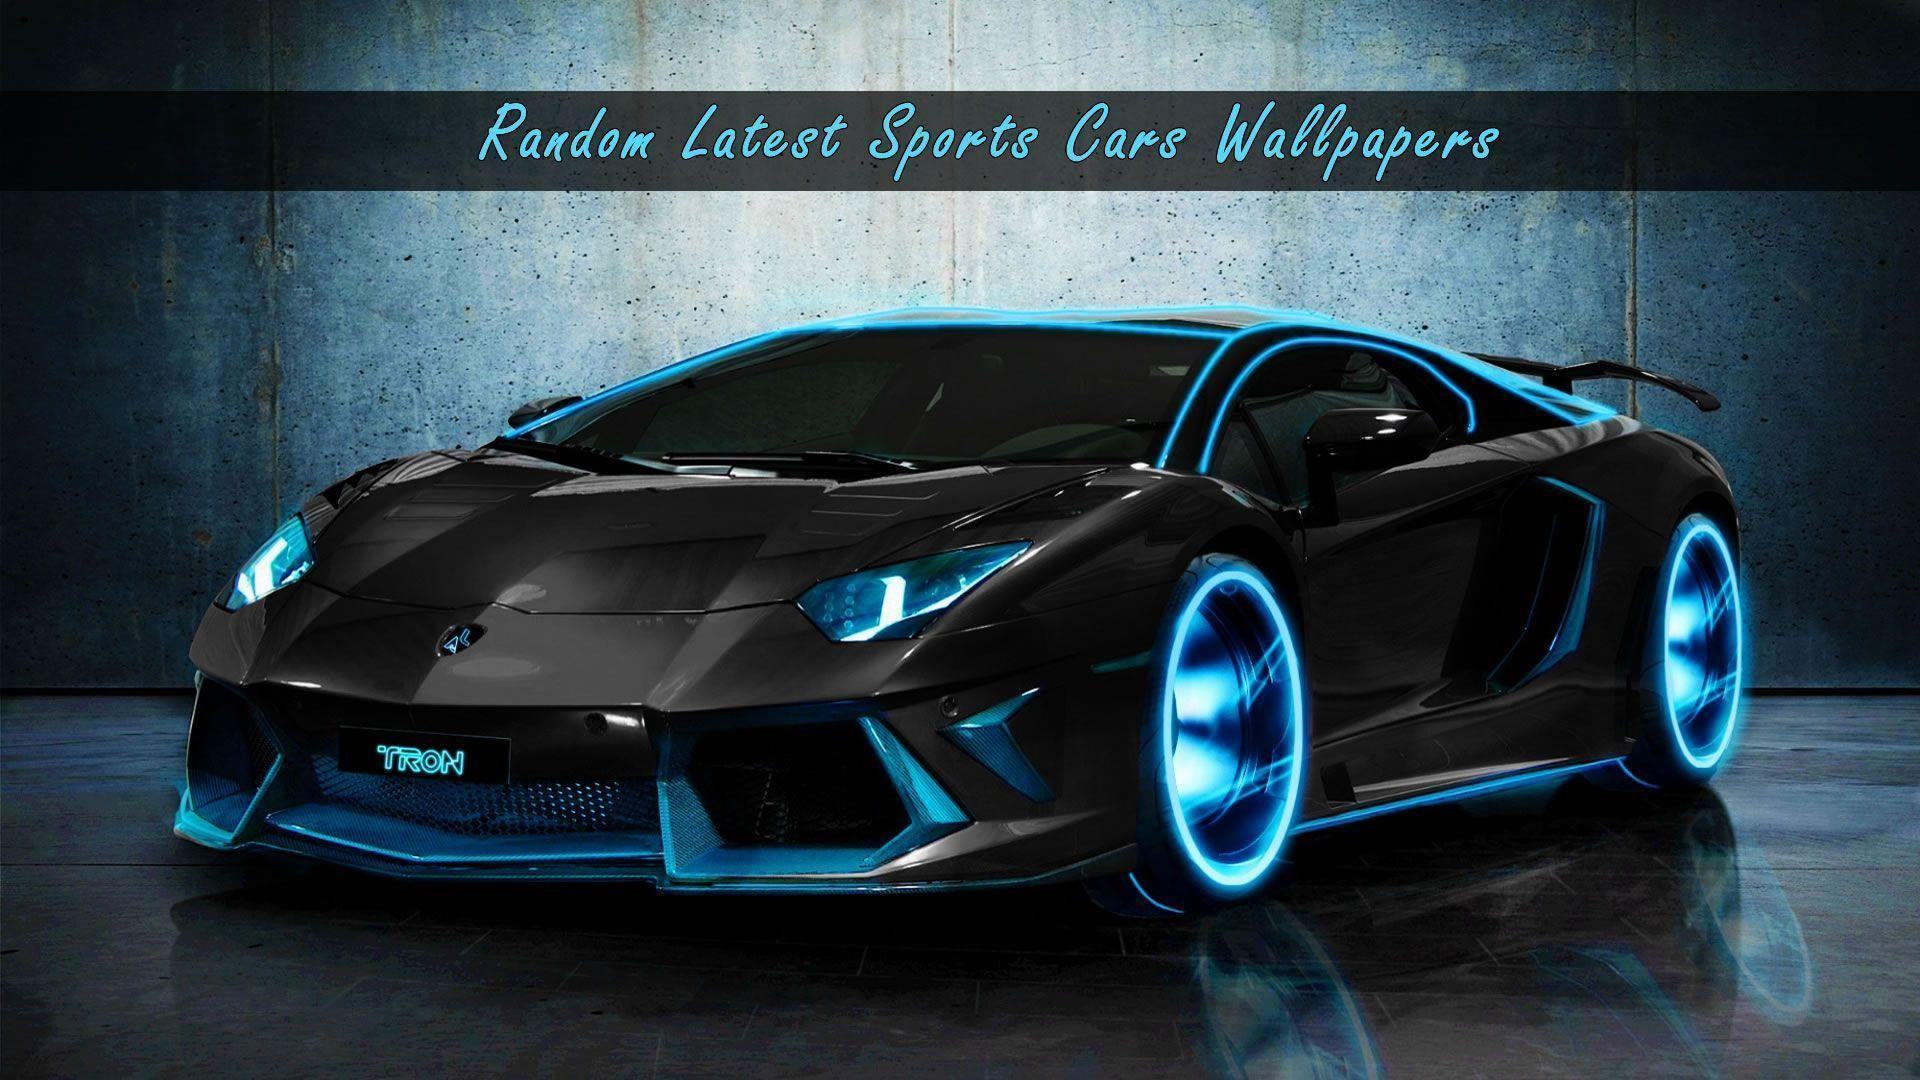 Latest car wallpaper | Wallpapers wide cars